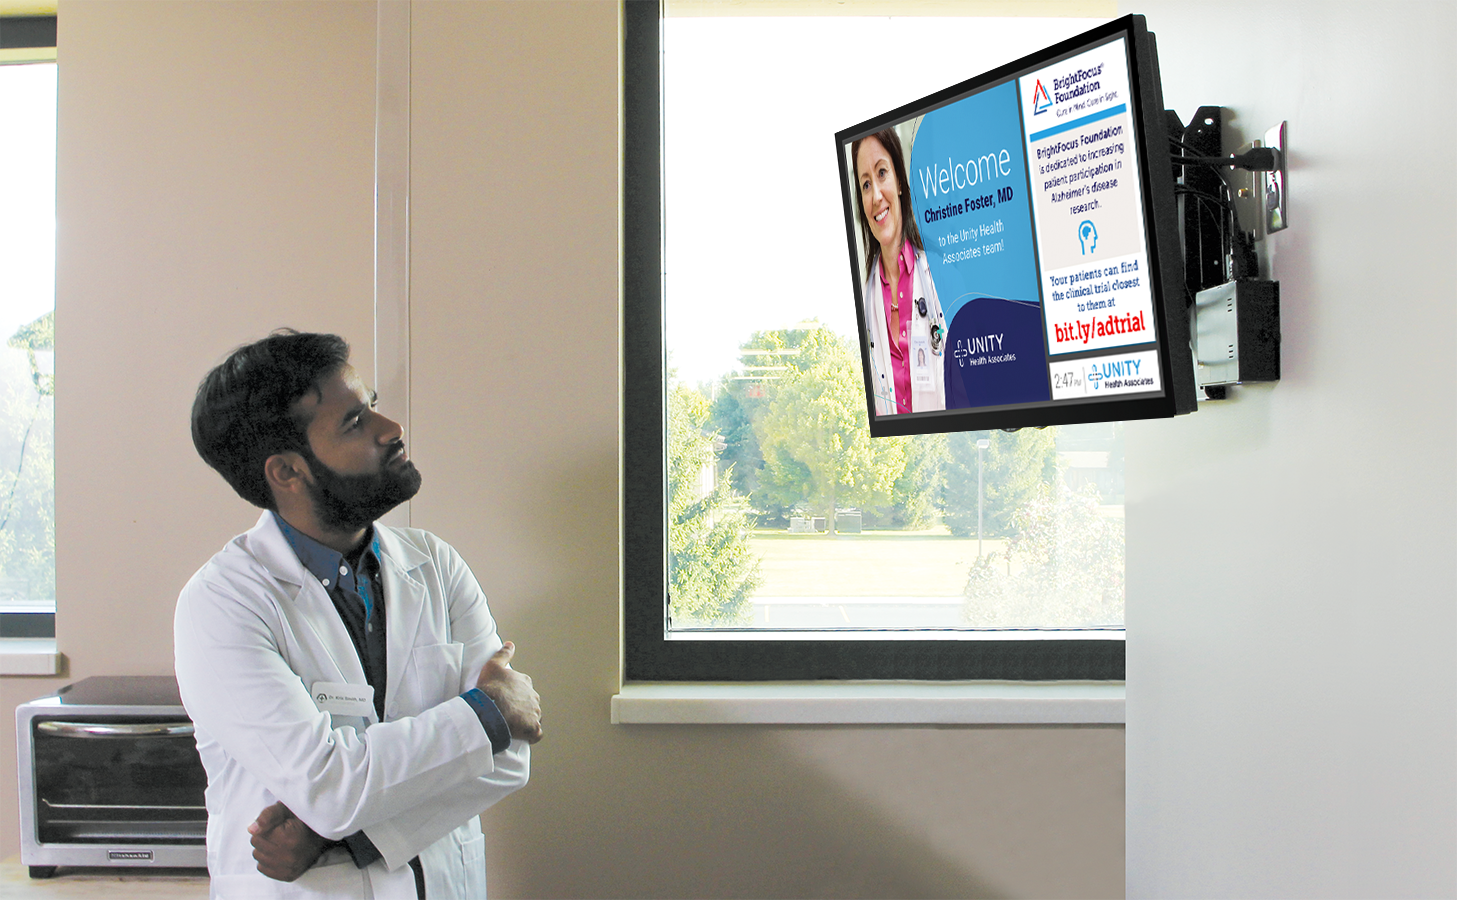 A young male doctor looks at a screen in a break room of his practice with information about neurology clinical trials on it.